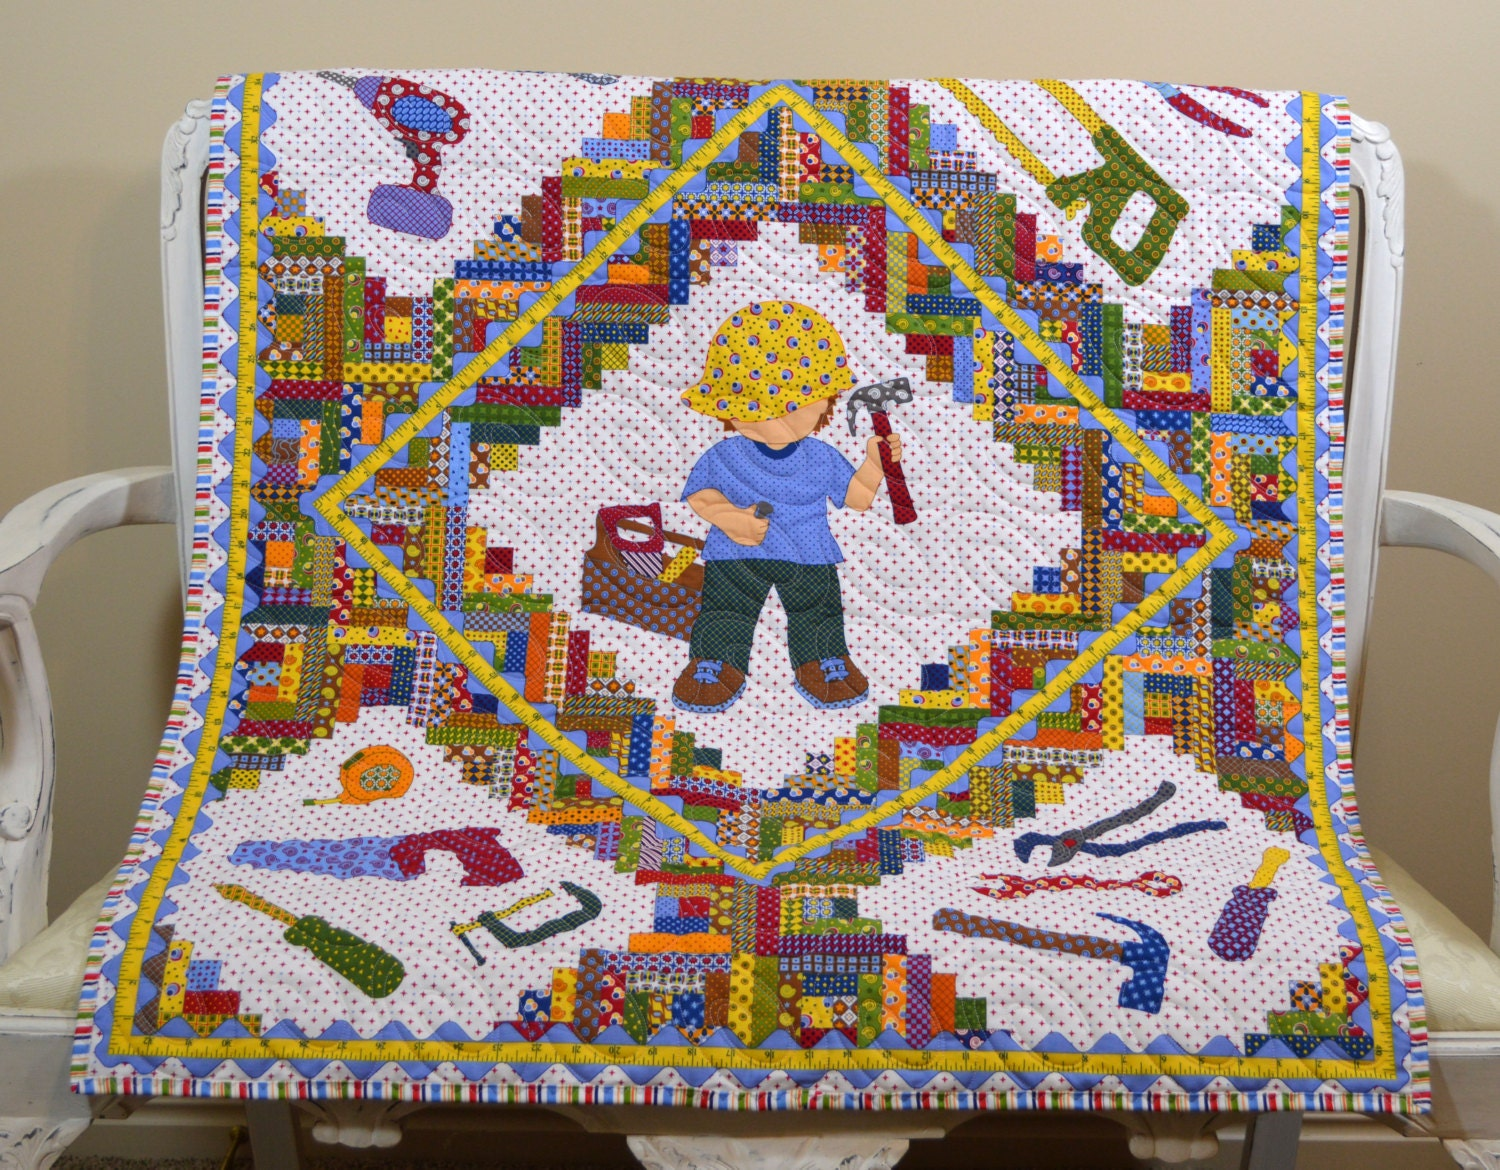 Boy Baby Construction Tool Quilt Crib Blanket Colorful Tool